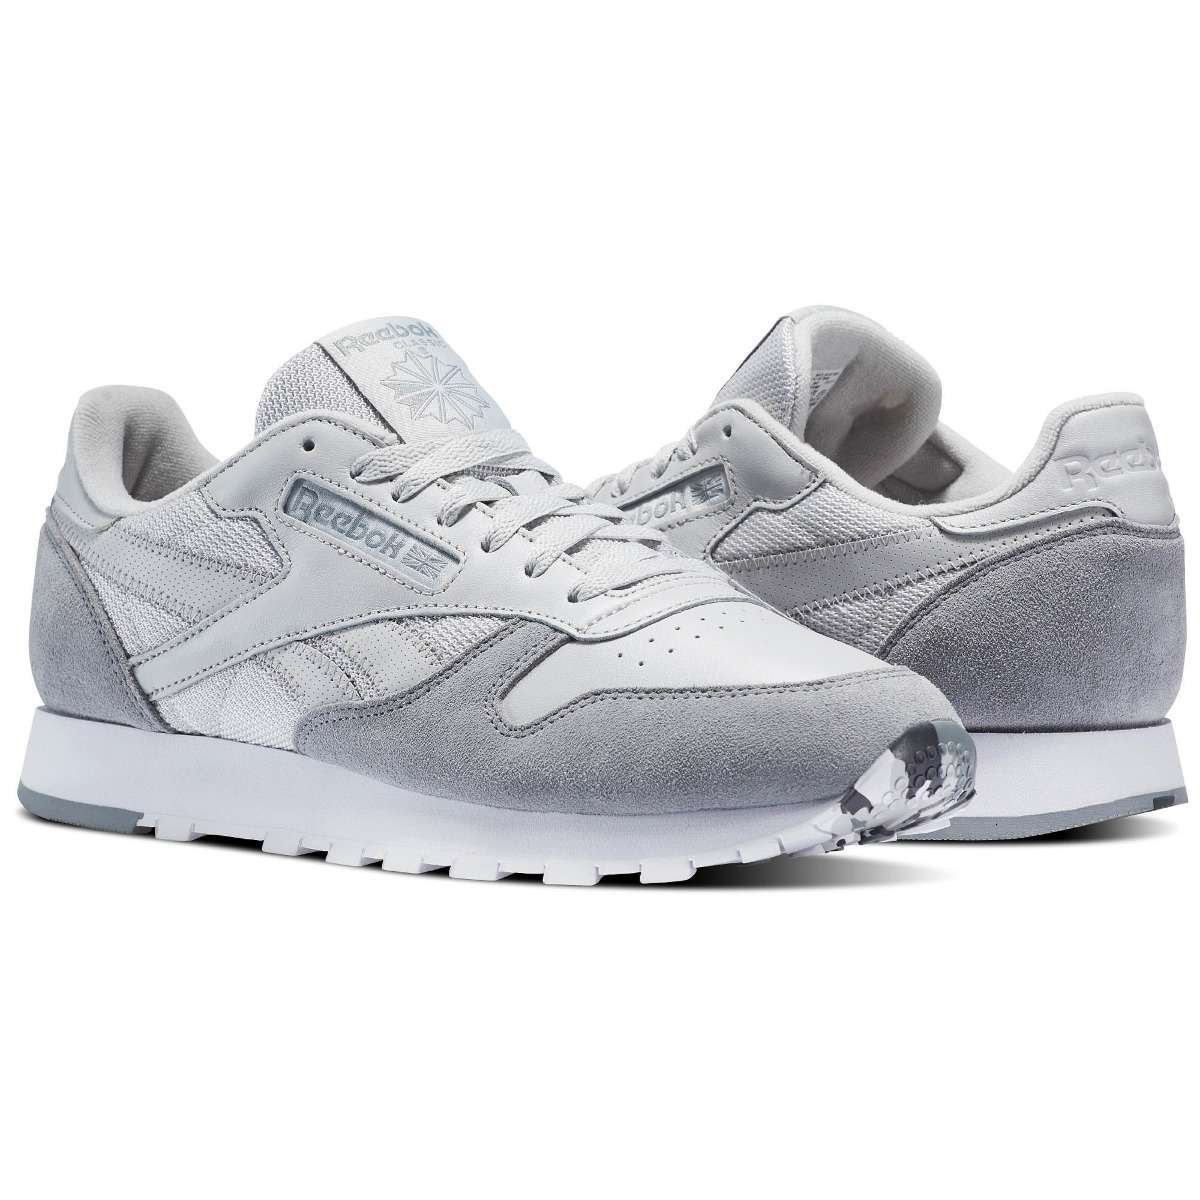 1ad6a5cc479 Tênis Reebok Masculino Cl Leather Mo Bs5148 Original - R  349